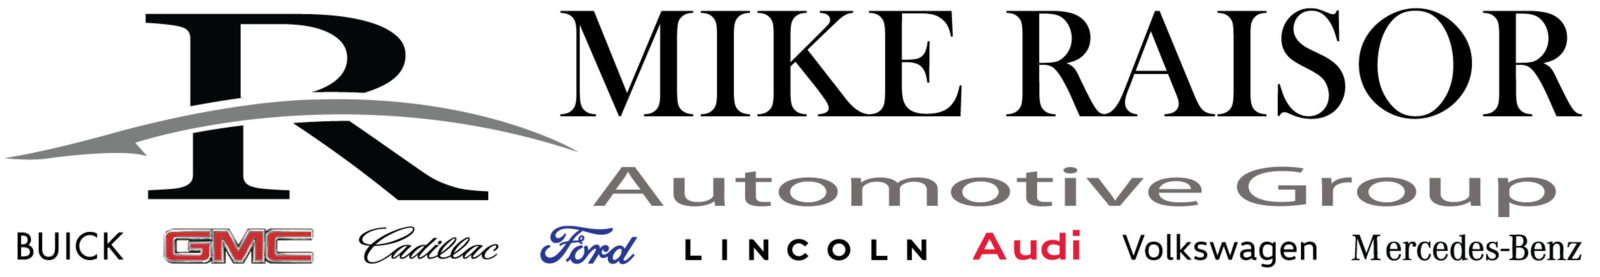 Mike Raisor Ford >> Mike Raisor Auto Group - Lafayette, IN: Read Consumer reviews, Browse Used and New Cars for Sale